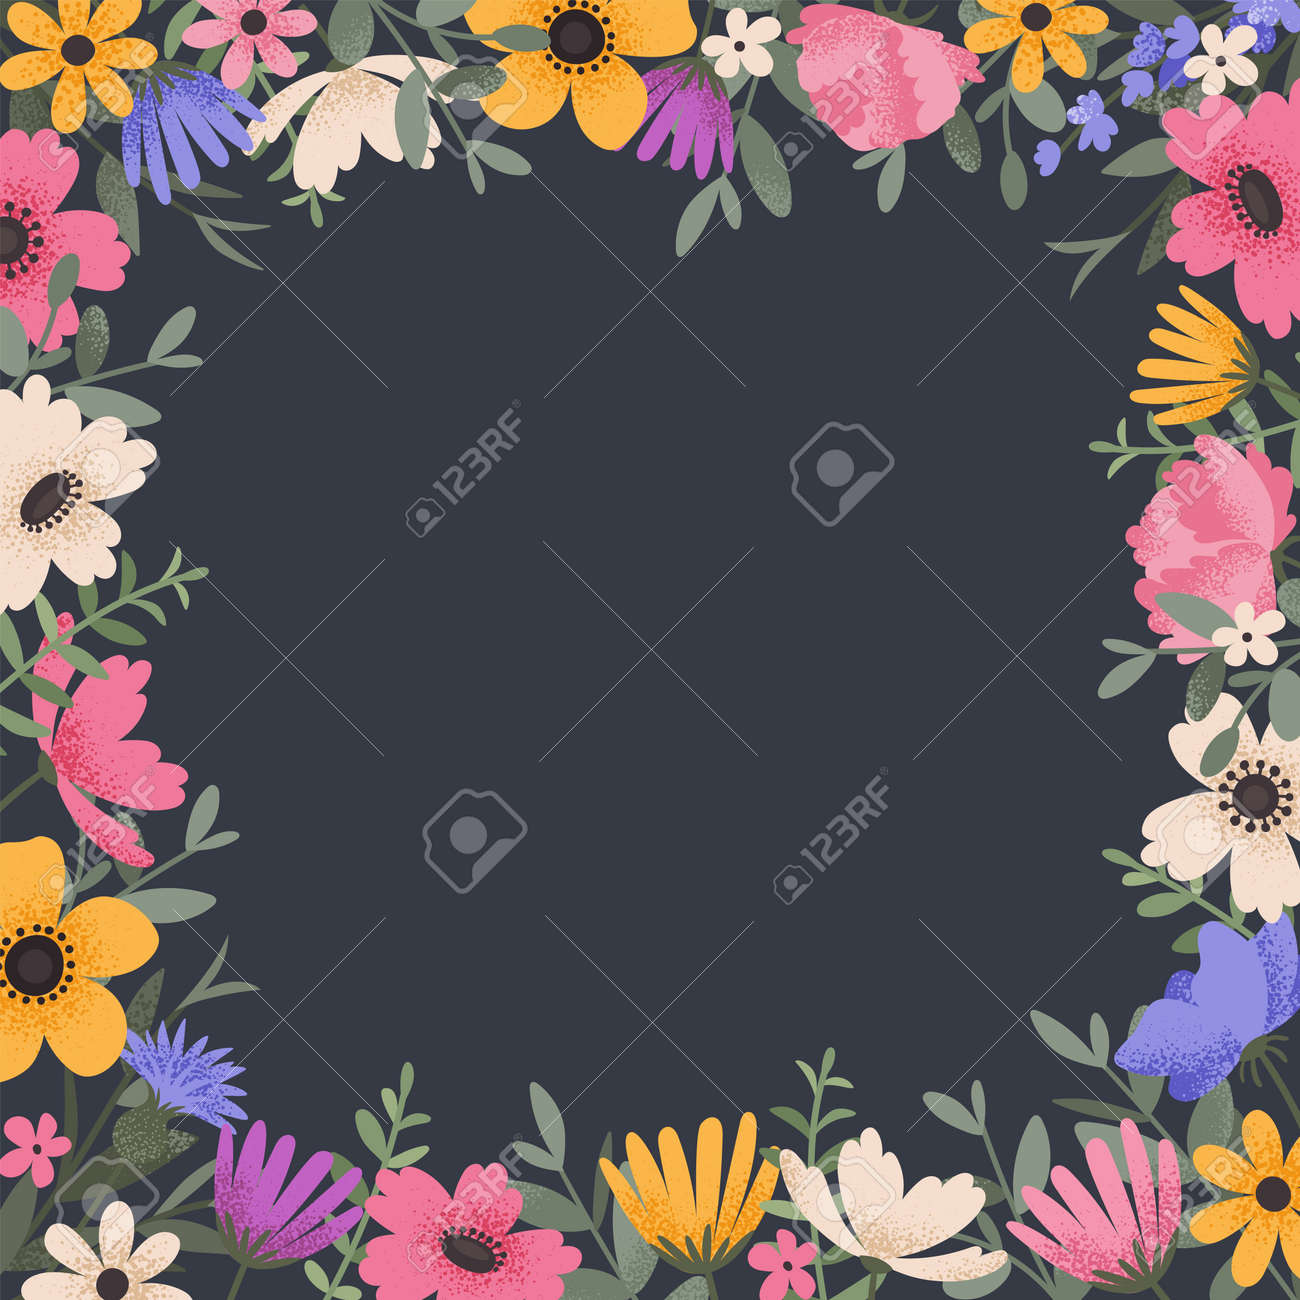 Floral background design with summer flowers. Greeting card with place for text. Template for invitation card with beautiful peonies and anemone flowers. Vector illustration - 164590607